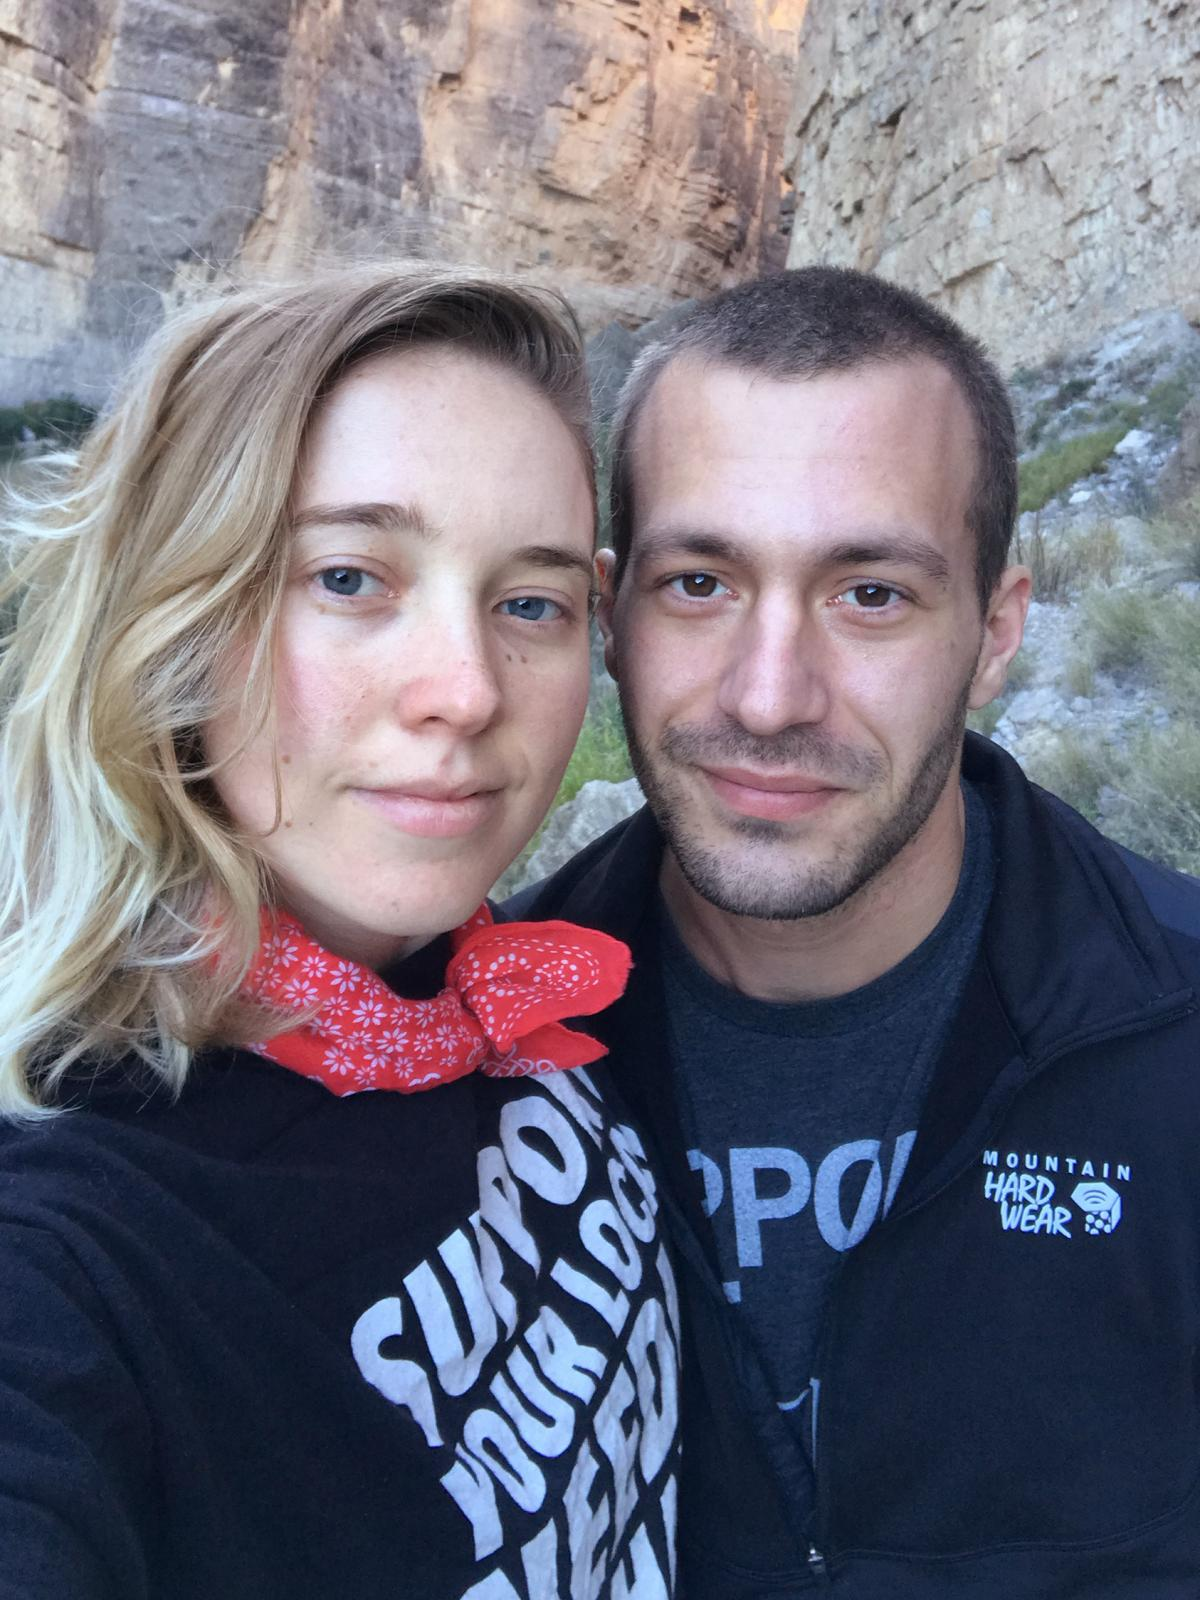 Sarah Ziegenhorn and Andy Beeler shared a selfie while hiking in Texas' Big Bend National Park in December 2018. Beeler died of an opioid overdose last March. Ziegenhorn traces his death to the many obstacles to medical care that Beeler experienced while